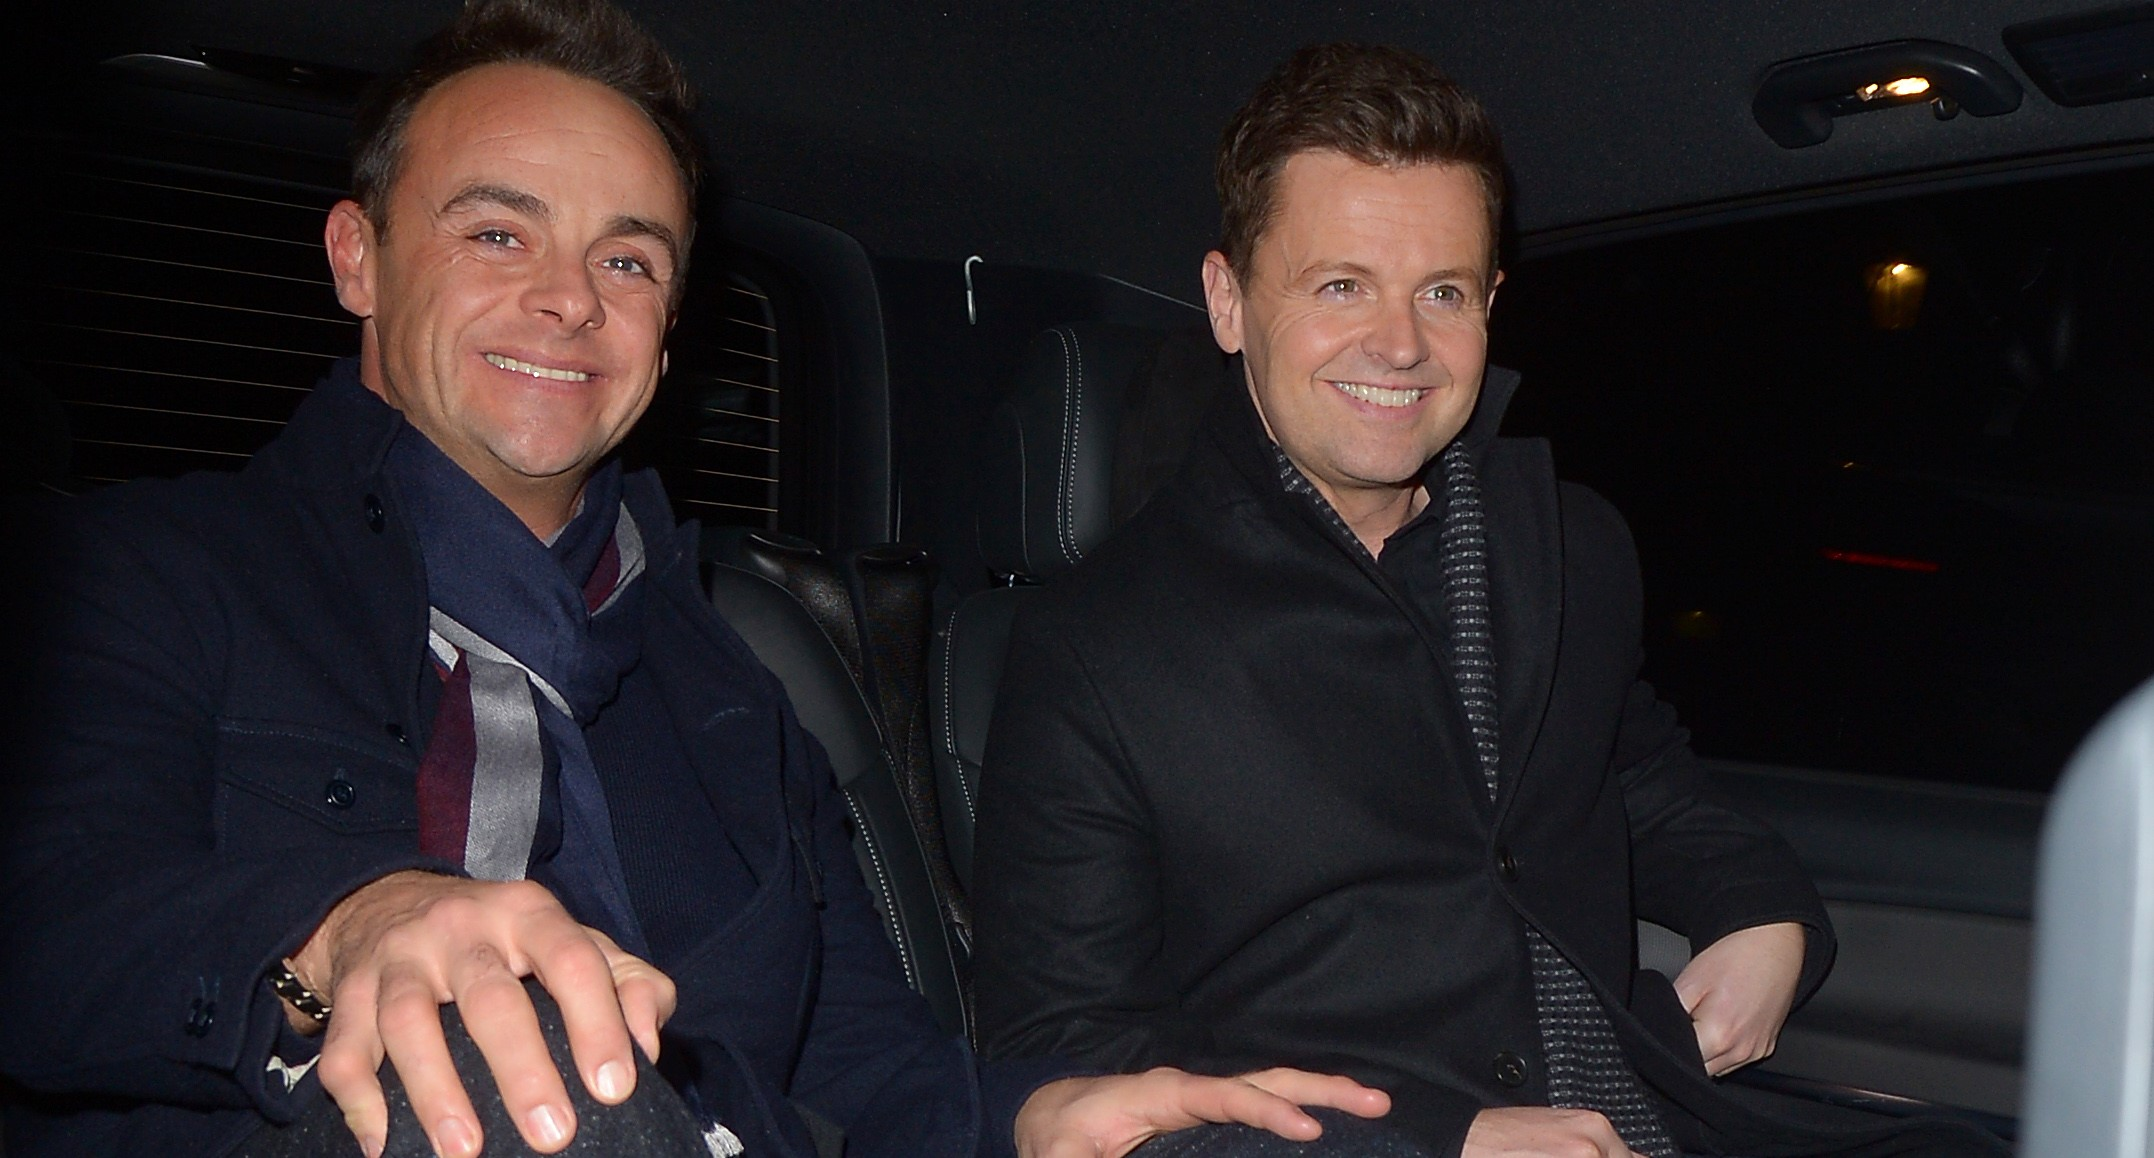 Ant and Dec fans impressed as the pair don tuxedos for BGT promo